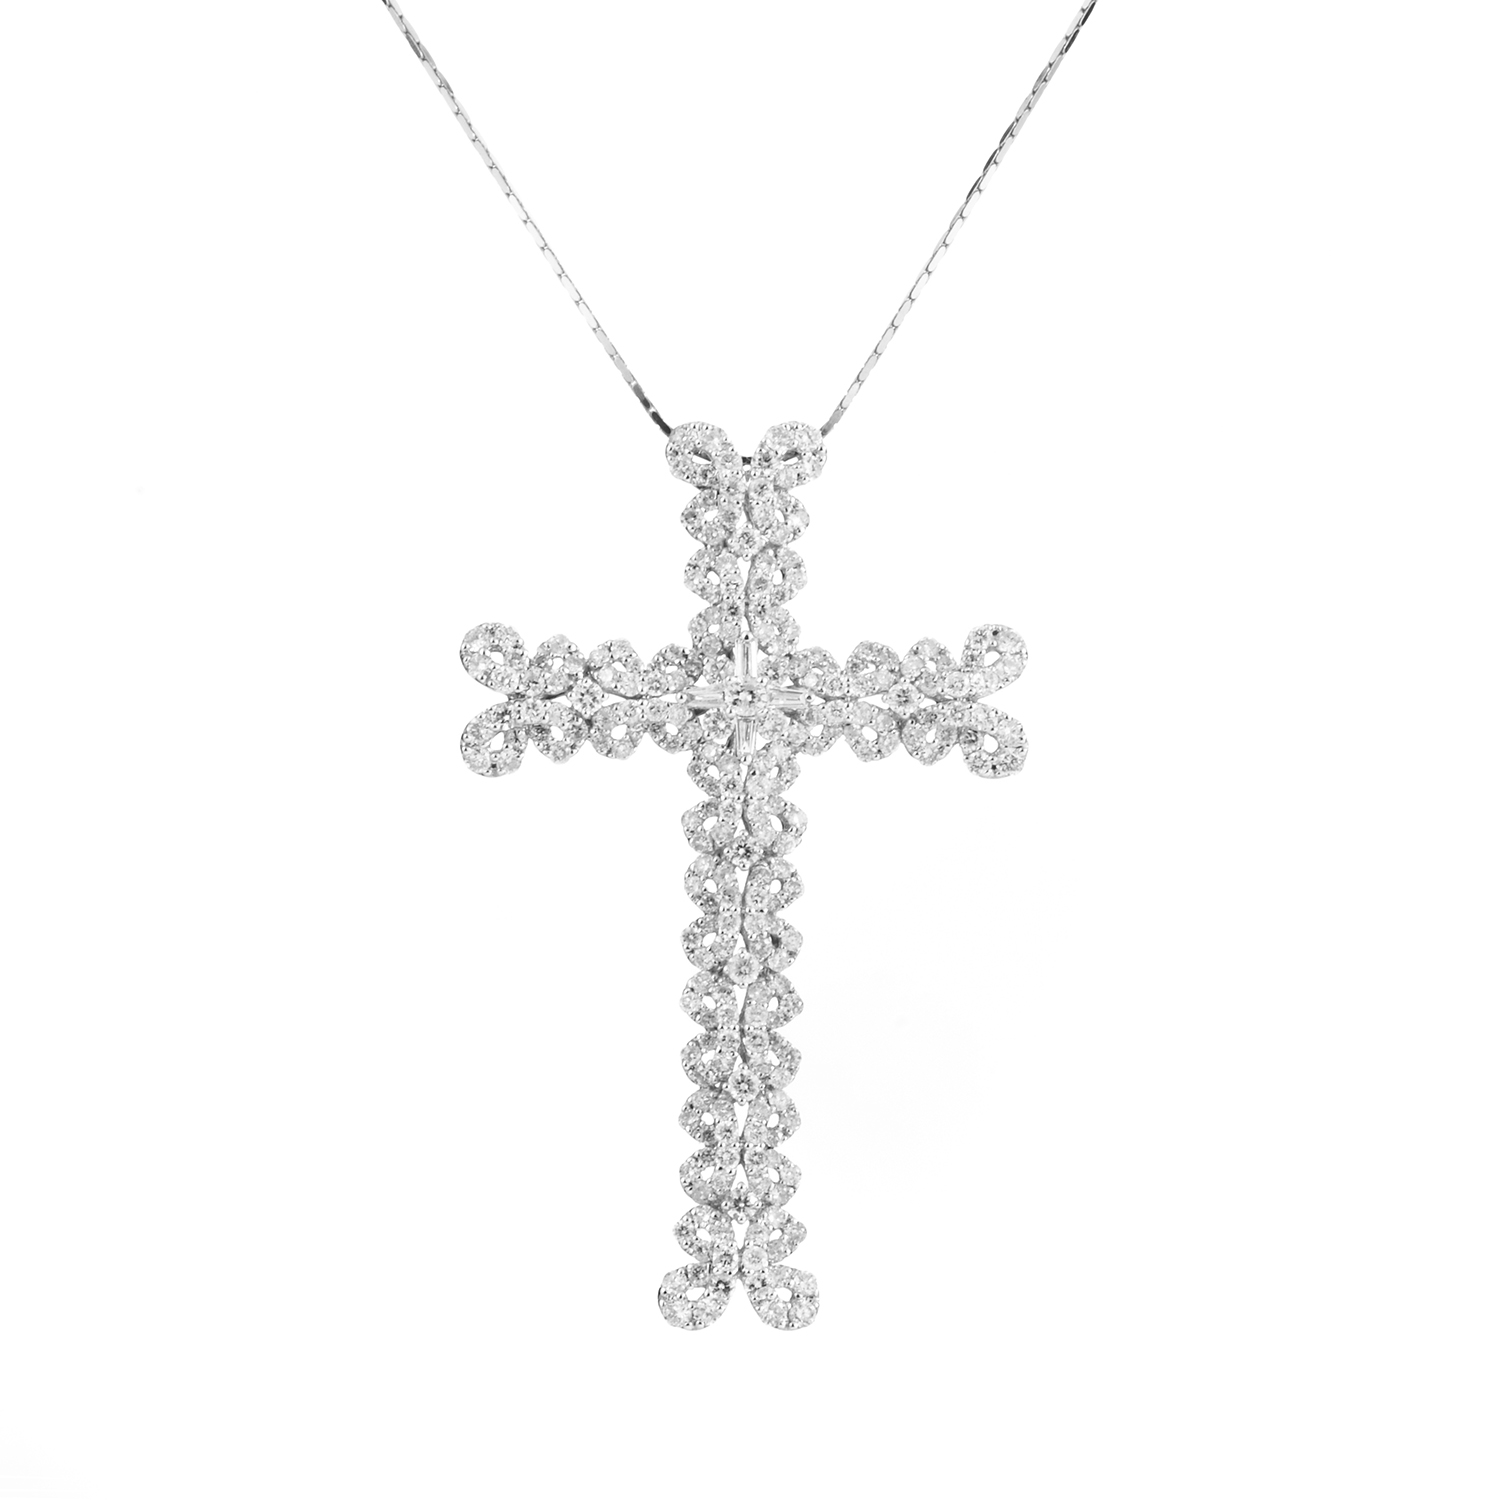 18K White Gold Woven Diamond Cross Pendant Necklace EC-61-031616